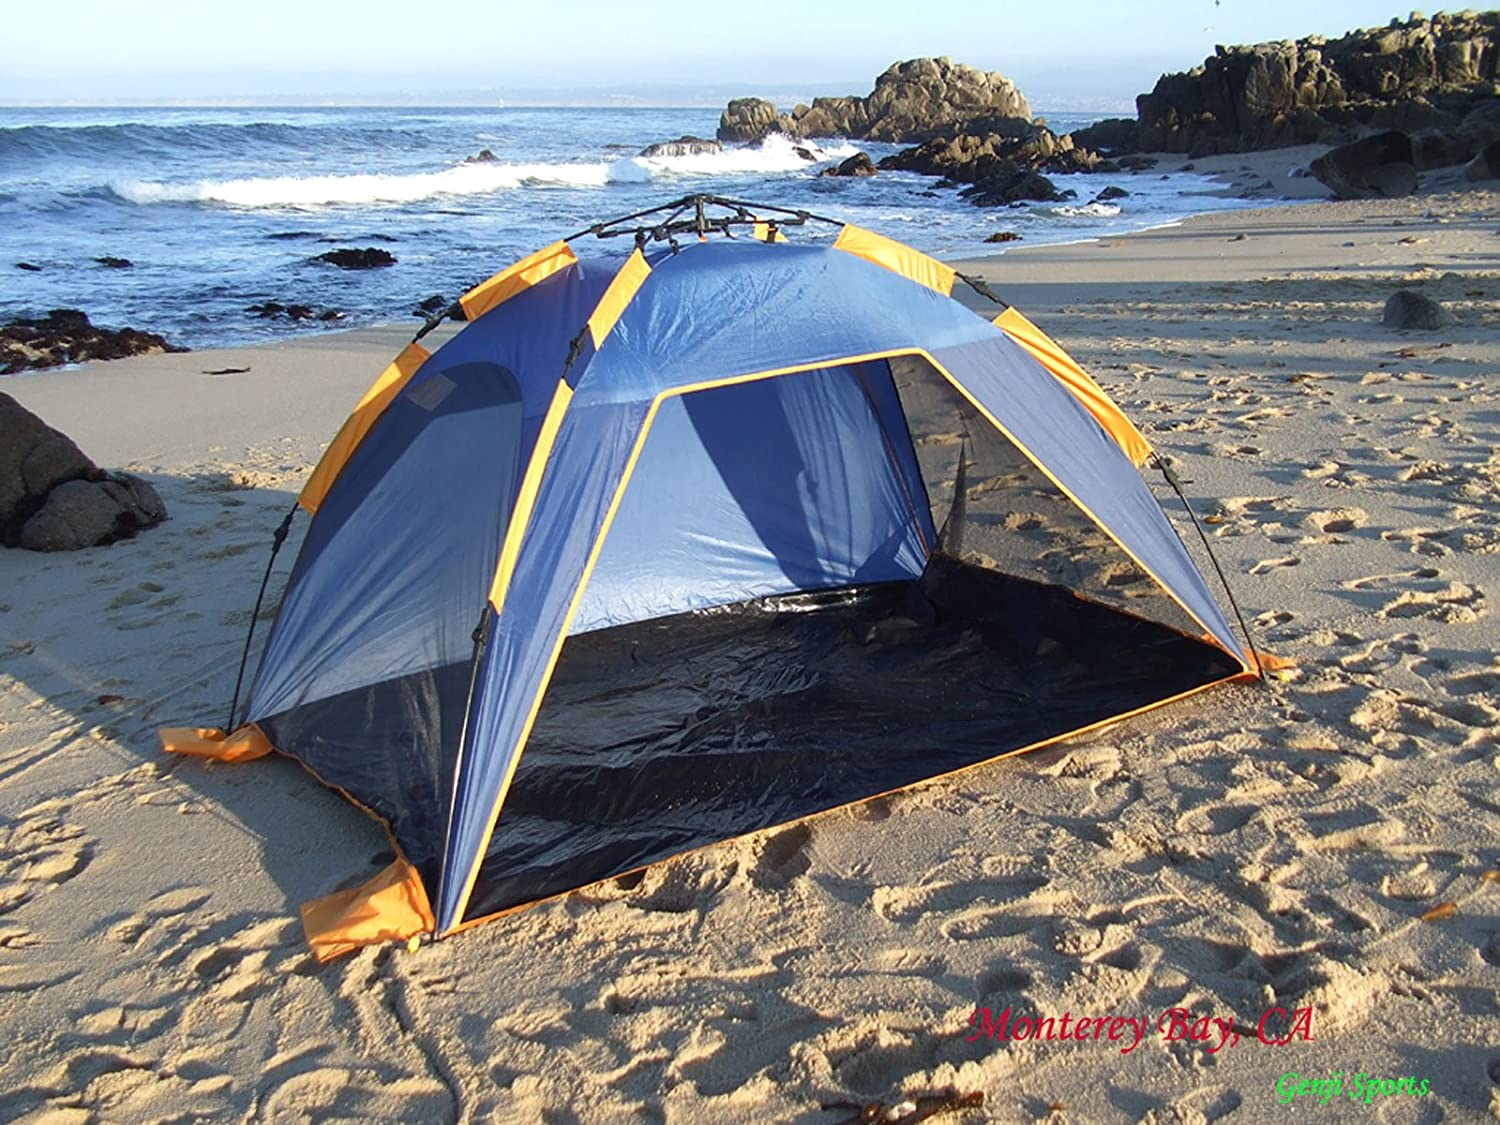 Amazon.com Genji Sports Instant Push Up Beach Tent Sun Shelter Sports u0026 Outdoors & Amazon.com: Genji Sports Instant Push Up Beach Tent Sun Shelter ...